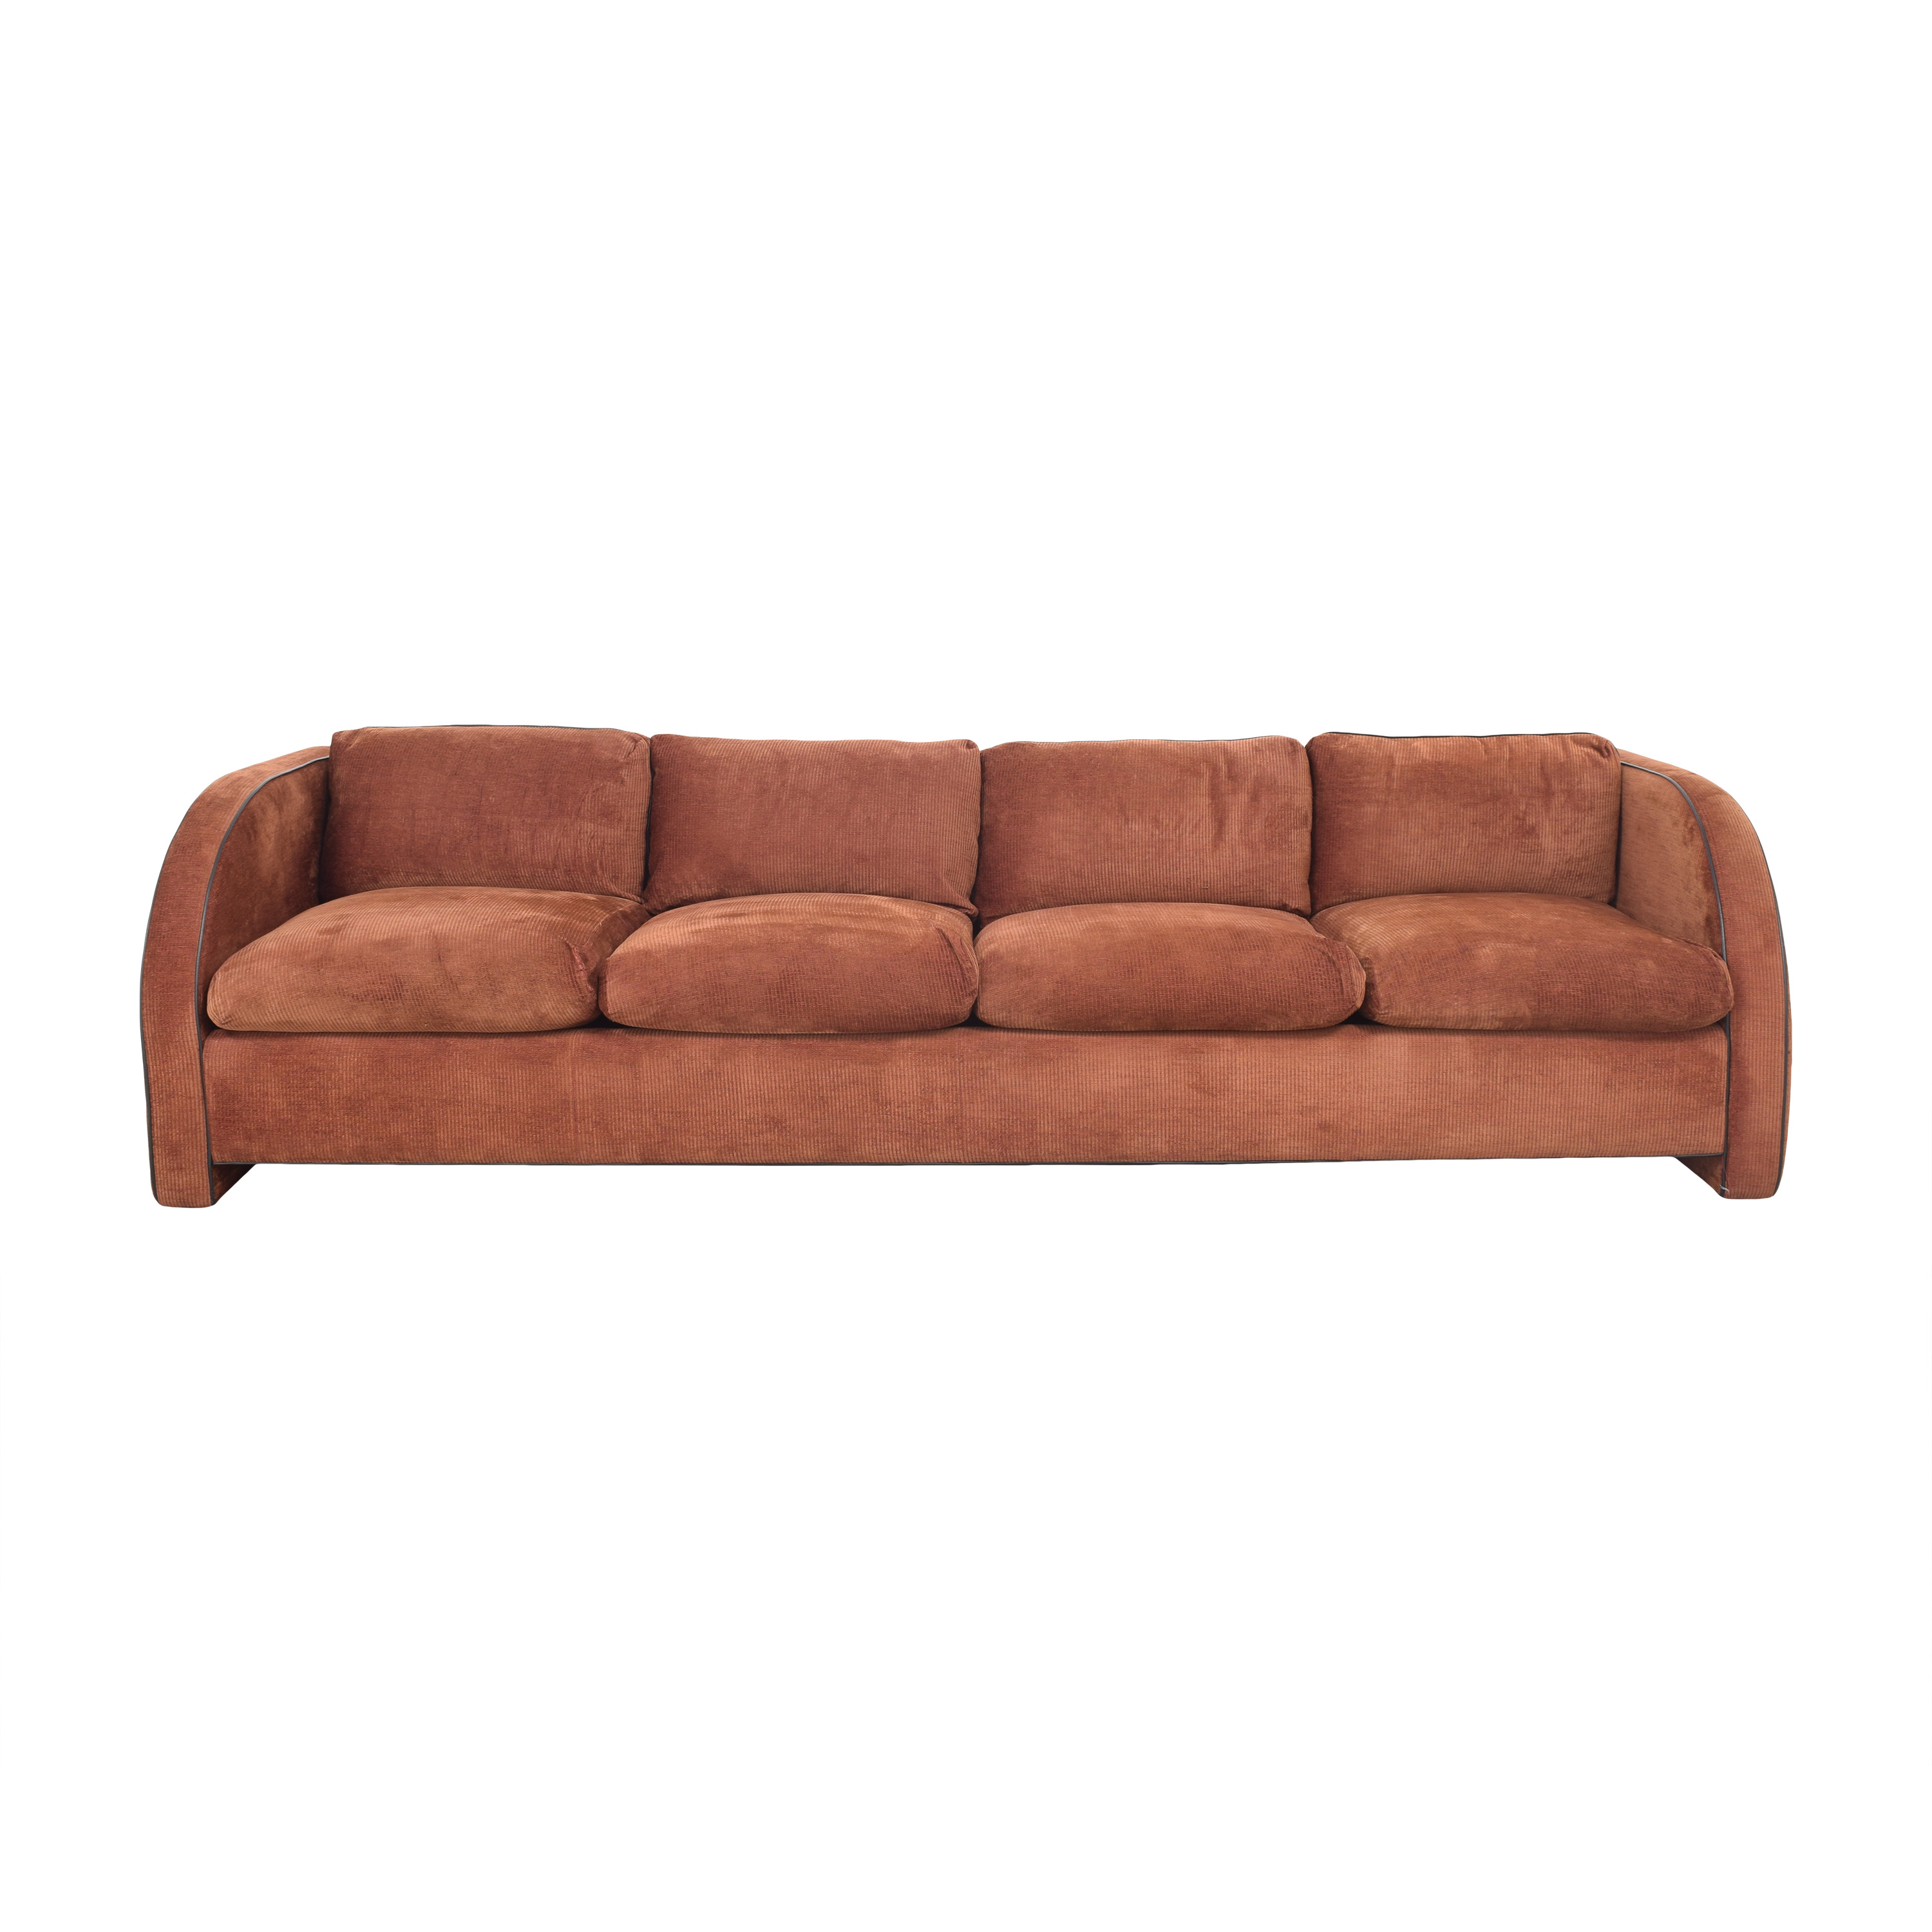 Avery Boardman Avery Boardman Custom Four Cushion Sofa Classic Sofas